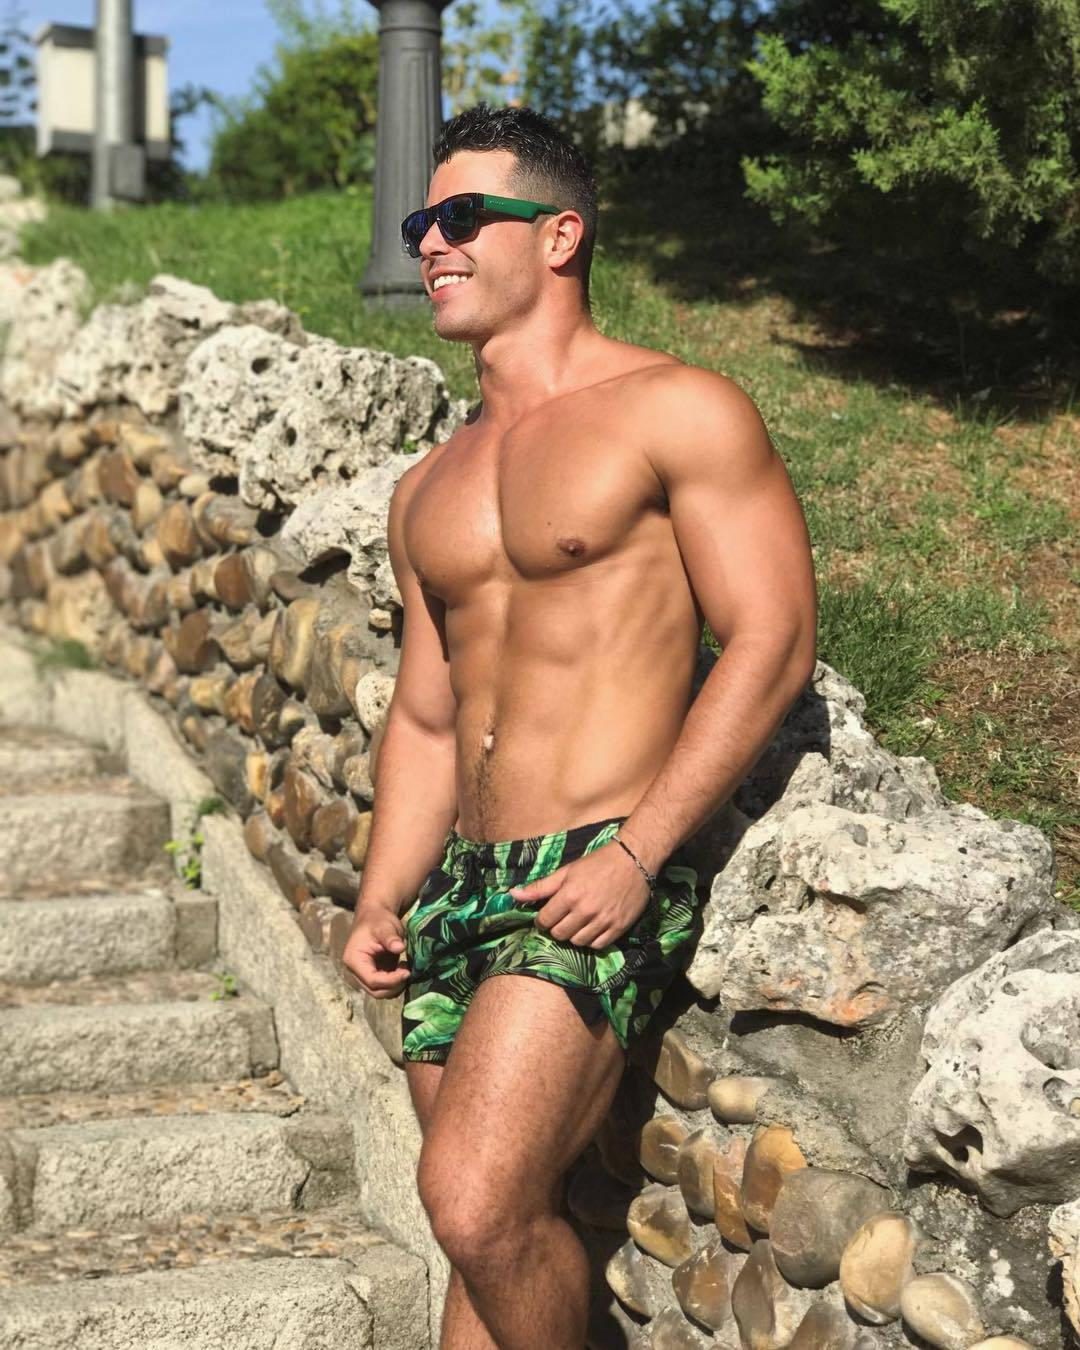 attractive-toned-shirtless-body-fit-brazilian-male-hunk-smiling-outdoors-sunny